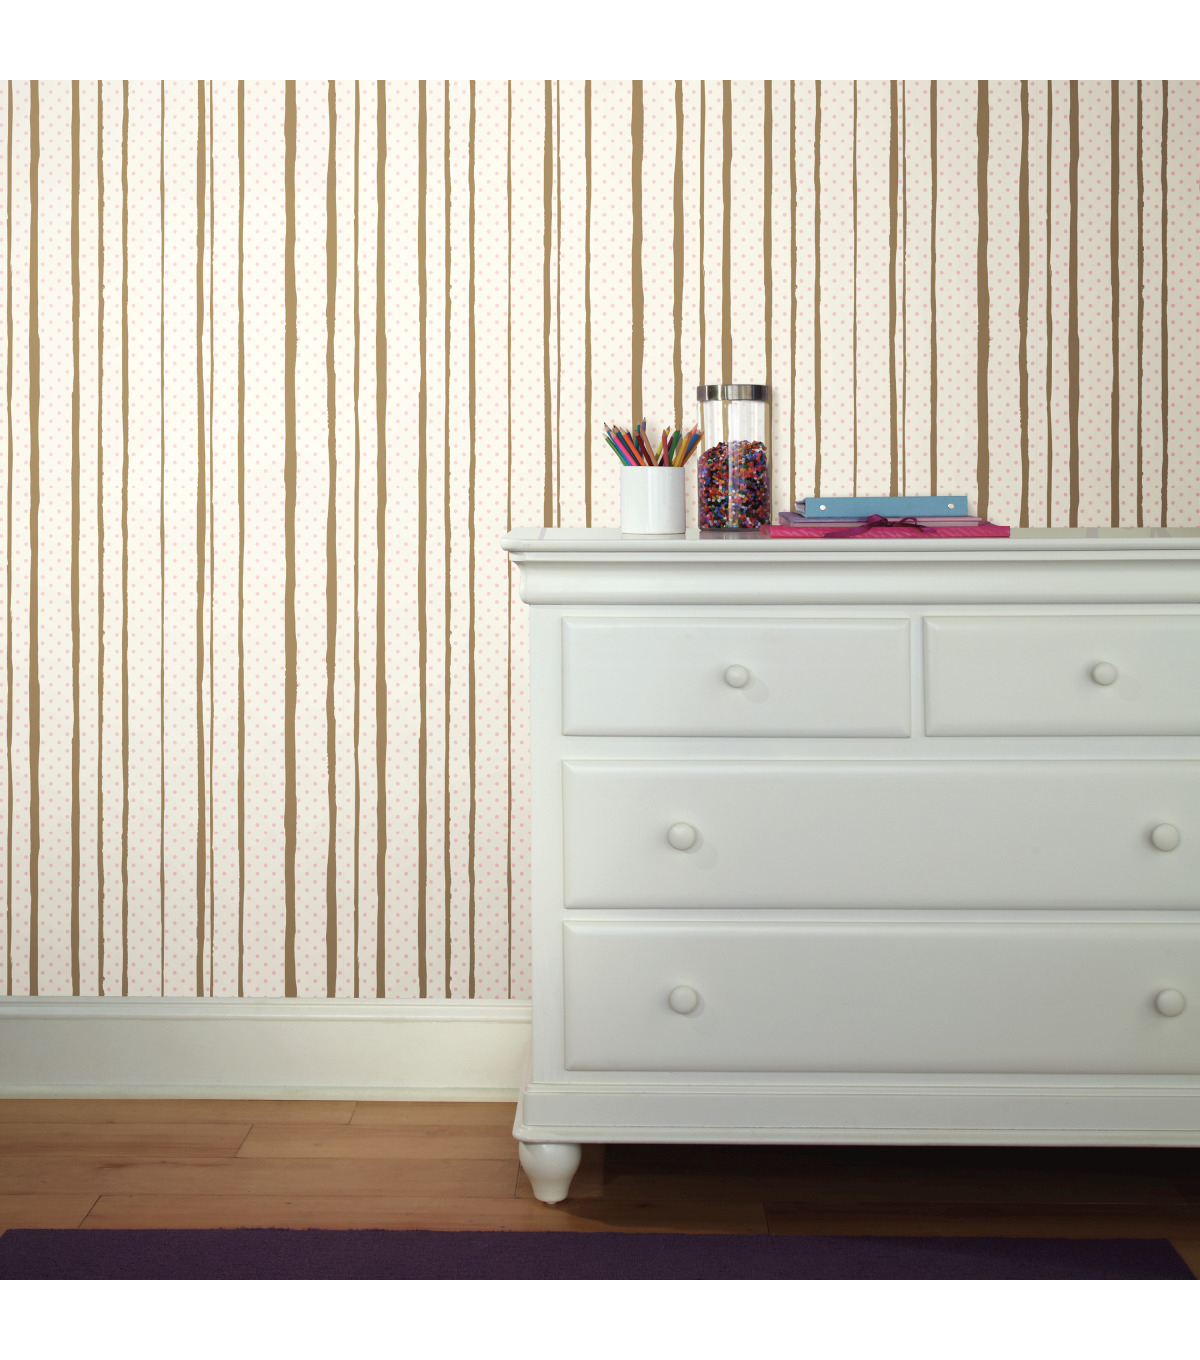 York Wallcoverings Wallpaper-Pink & Gold All Mixed Up